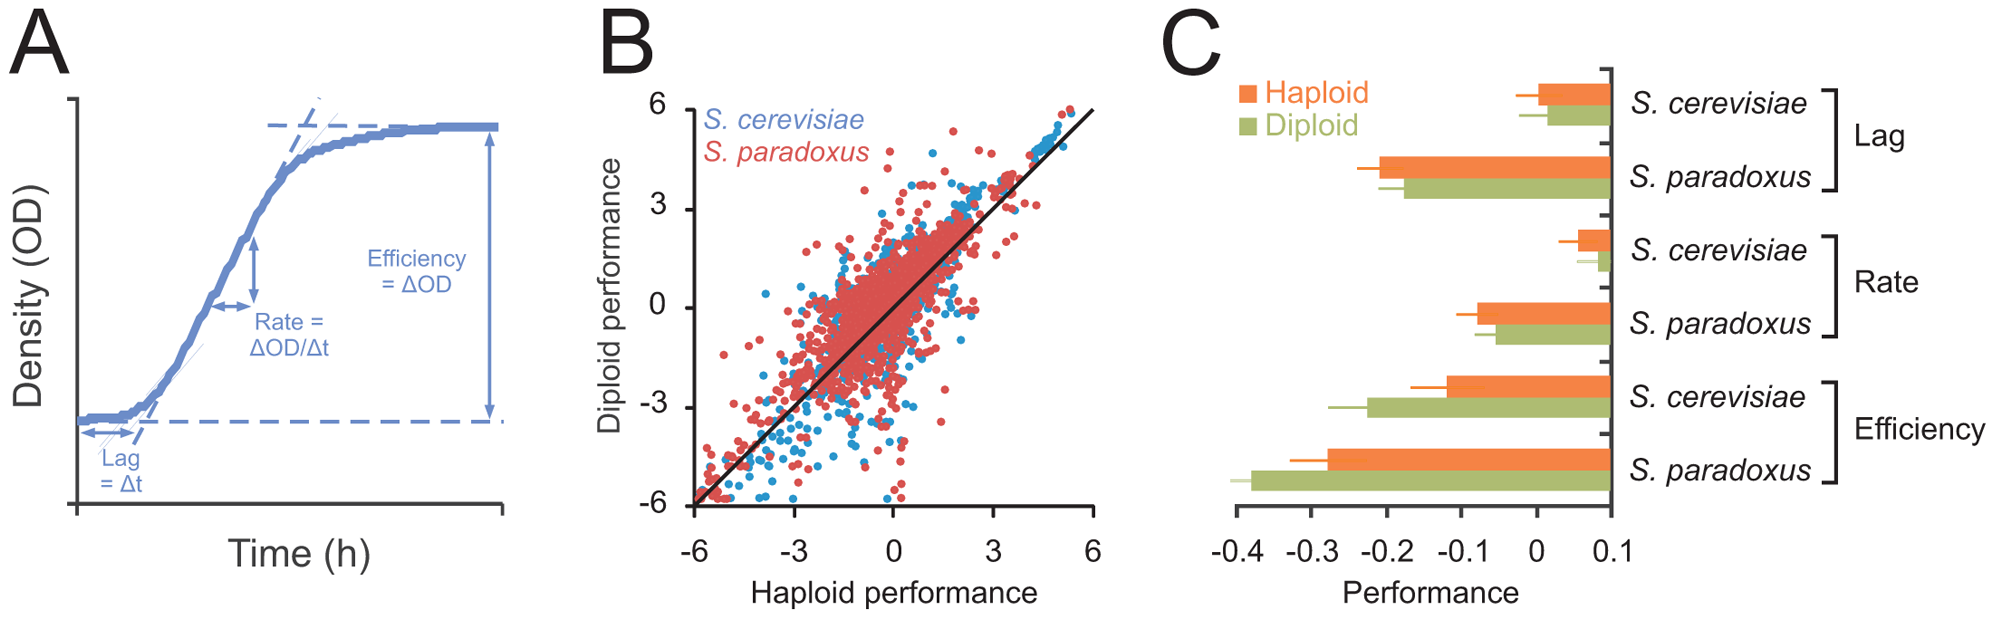 Ploidy–environment interactions are the rule rather than the exception in yeast and favor haploidy and diploidy equally.